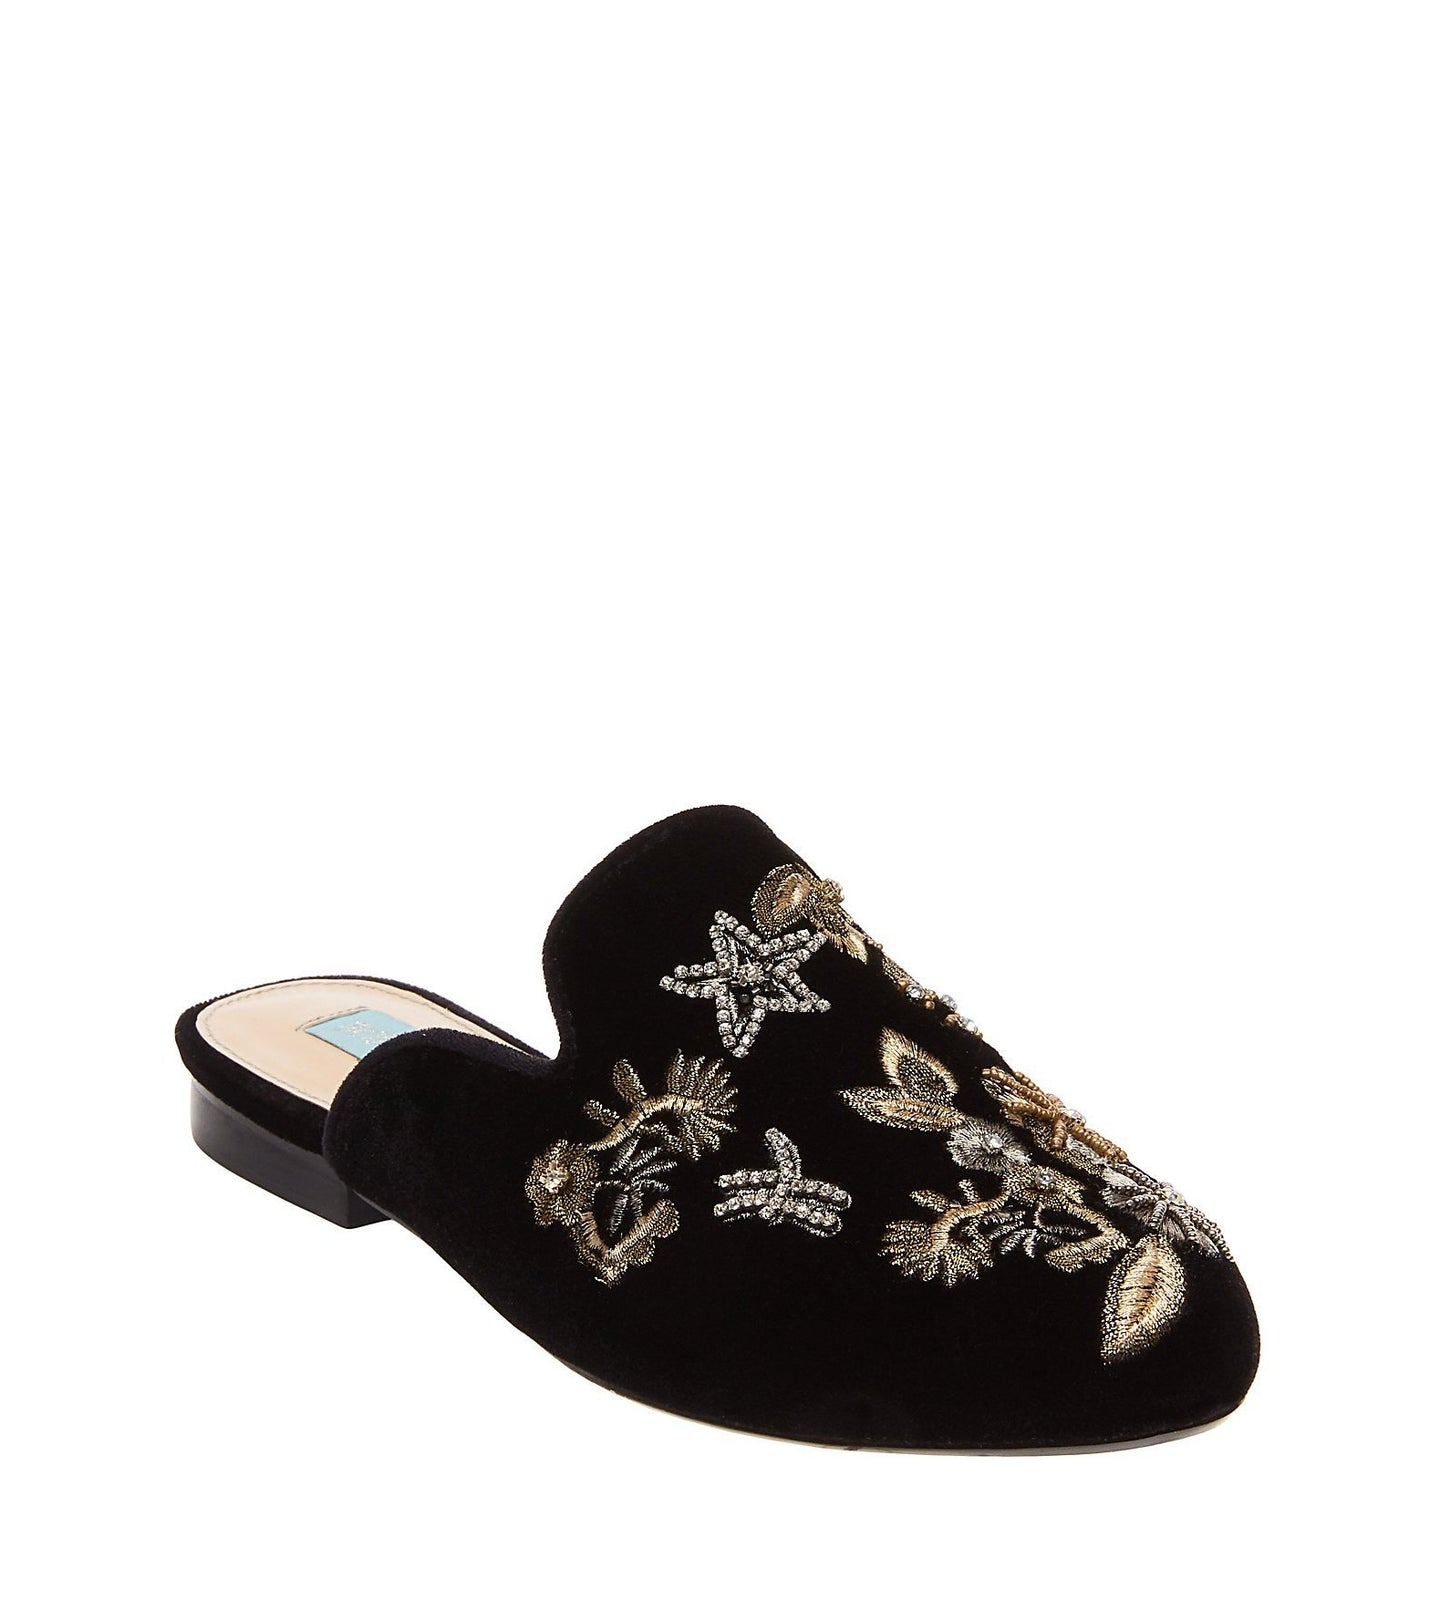 SB-EDEN BLACK VELVET - SHOES - Betsey Johnson